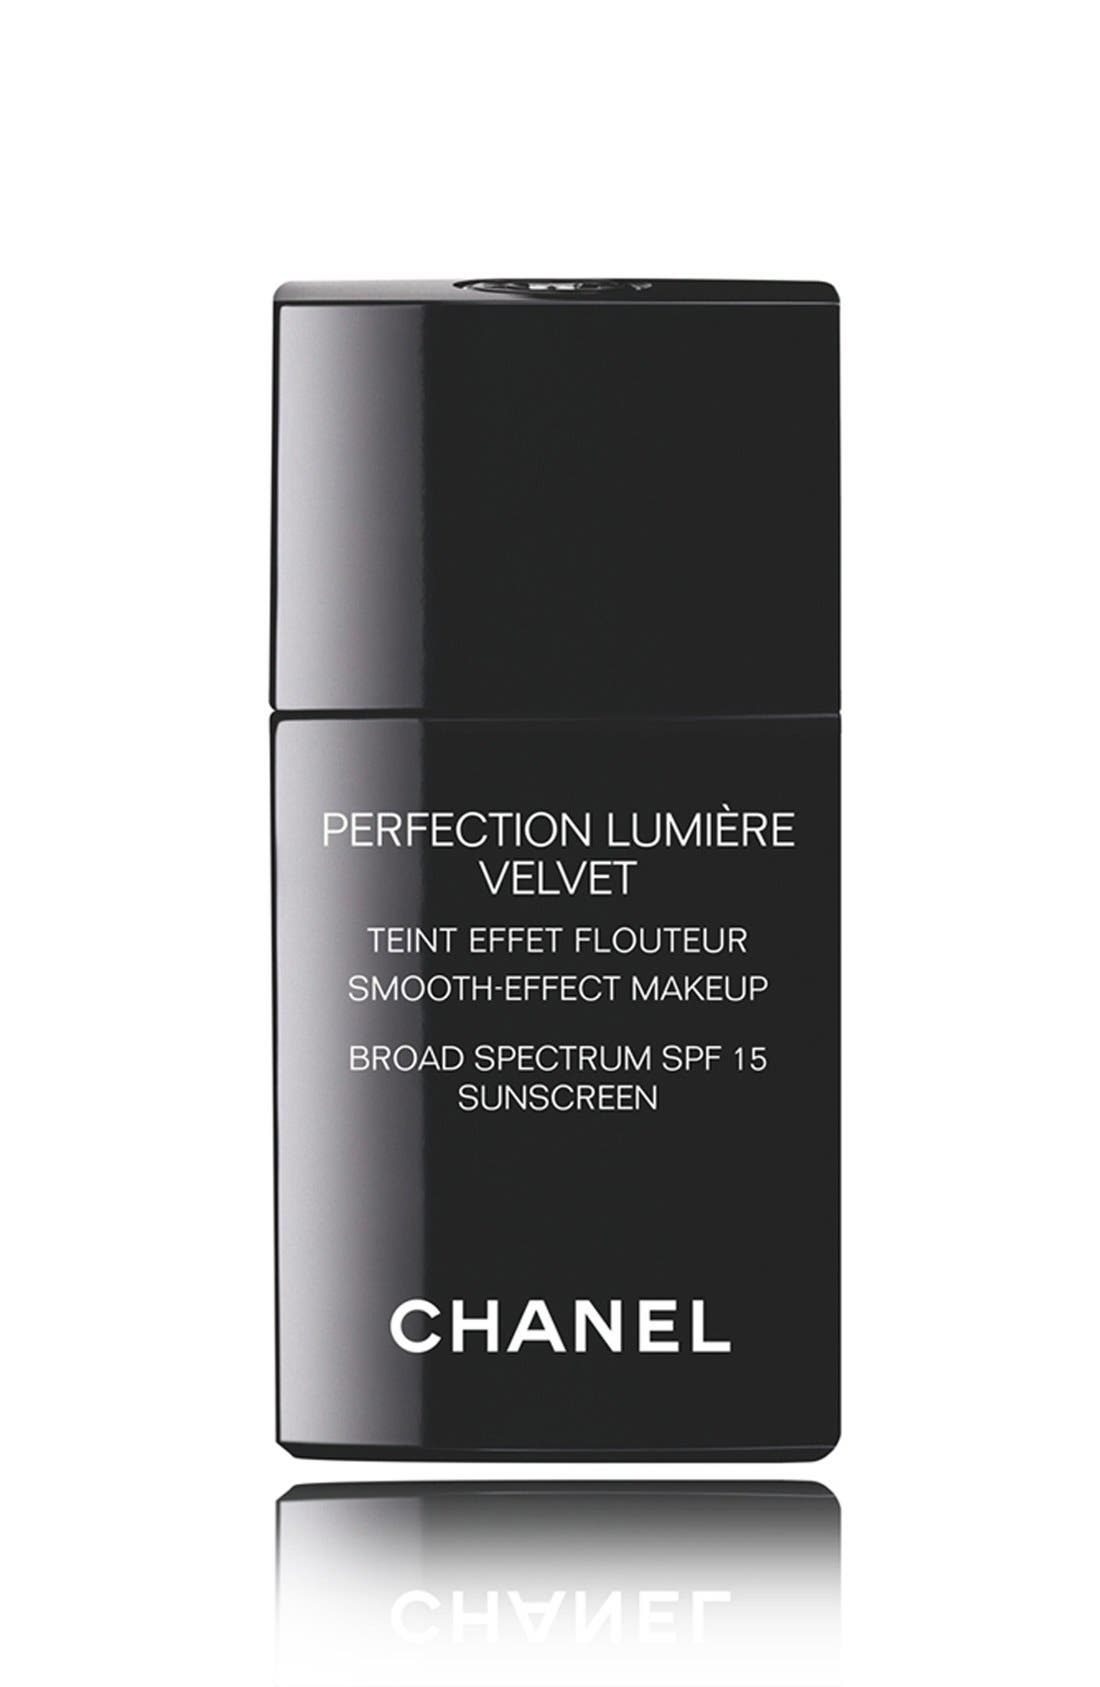 CHANEL PERFECTION LUMIÈRE VELVET 